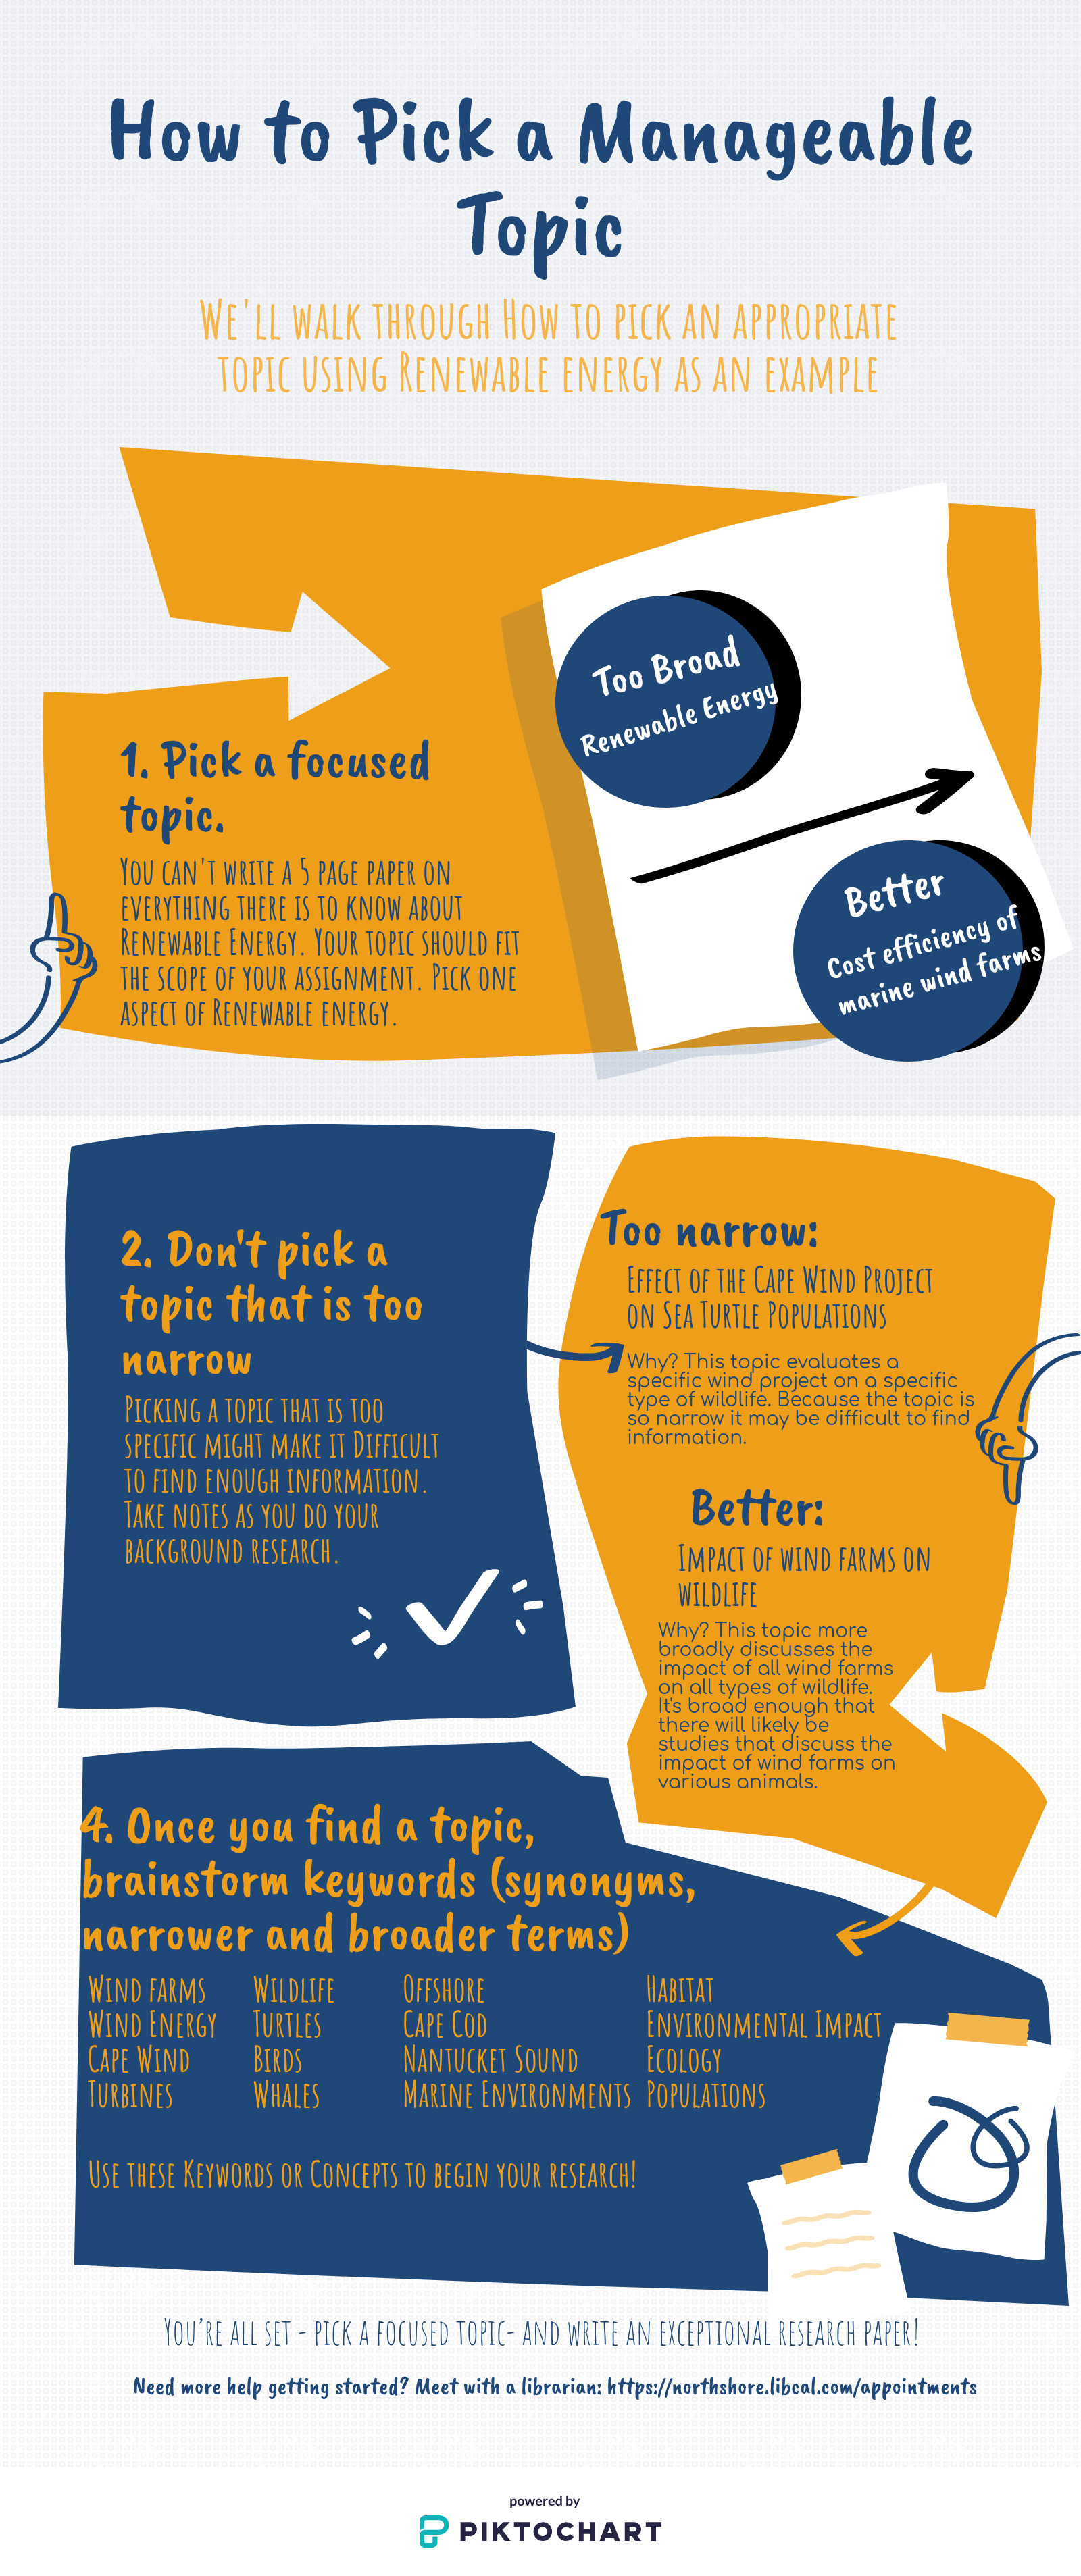 Infographic on How to Pick a Manageable Topic. Lists 4 steps that describe how to pick a focused topic that is neither too broad nor too narrow